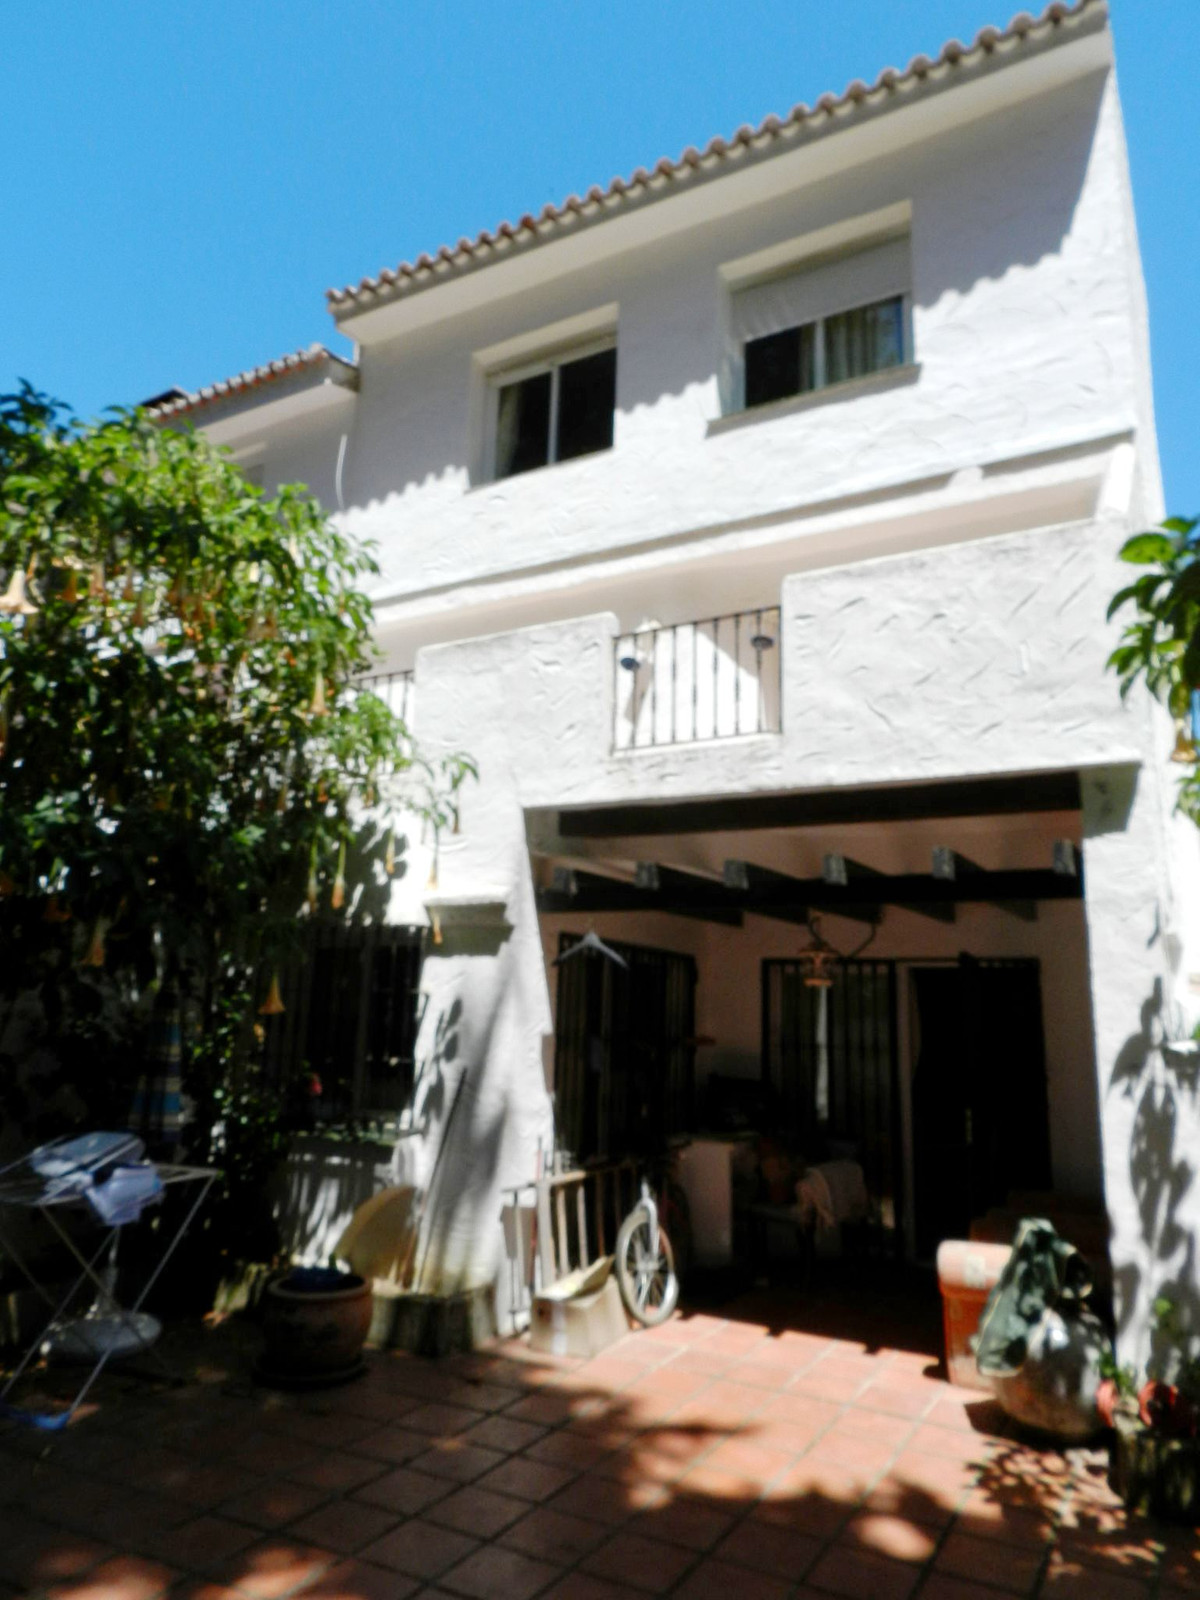 4 bedroom townhouse in Los Naranjos  Beautiful townhouse with 4 bedrooms in gated and private urbani, Spain